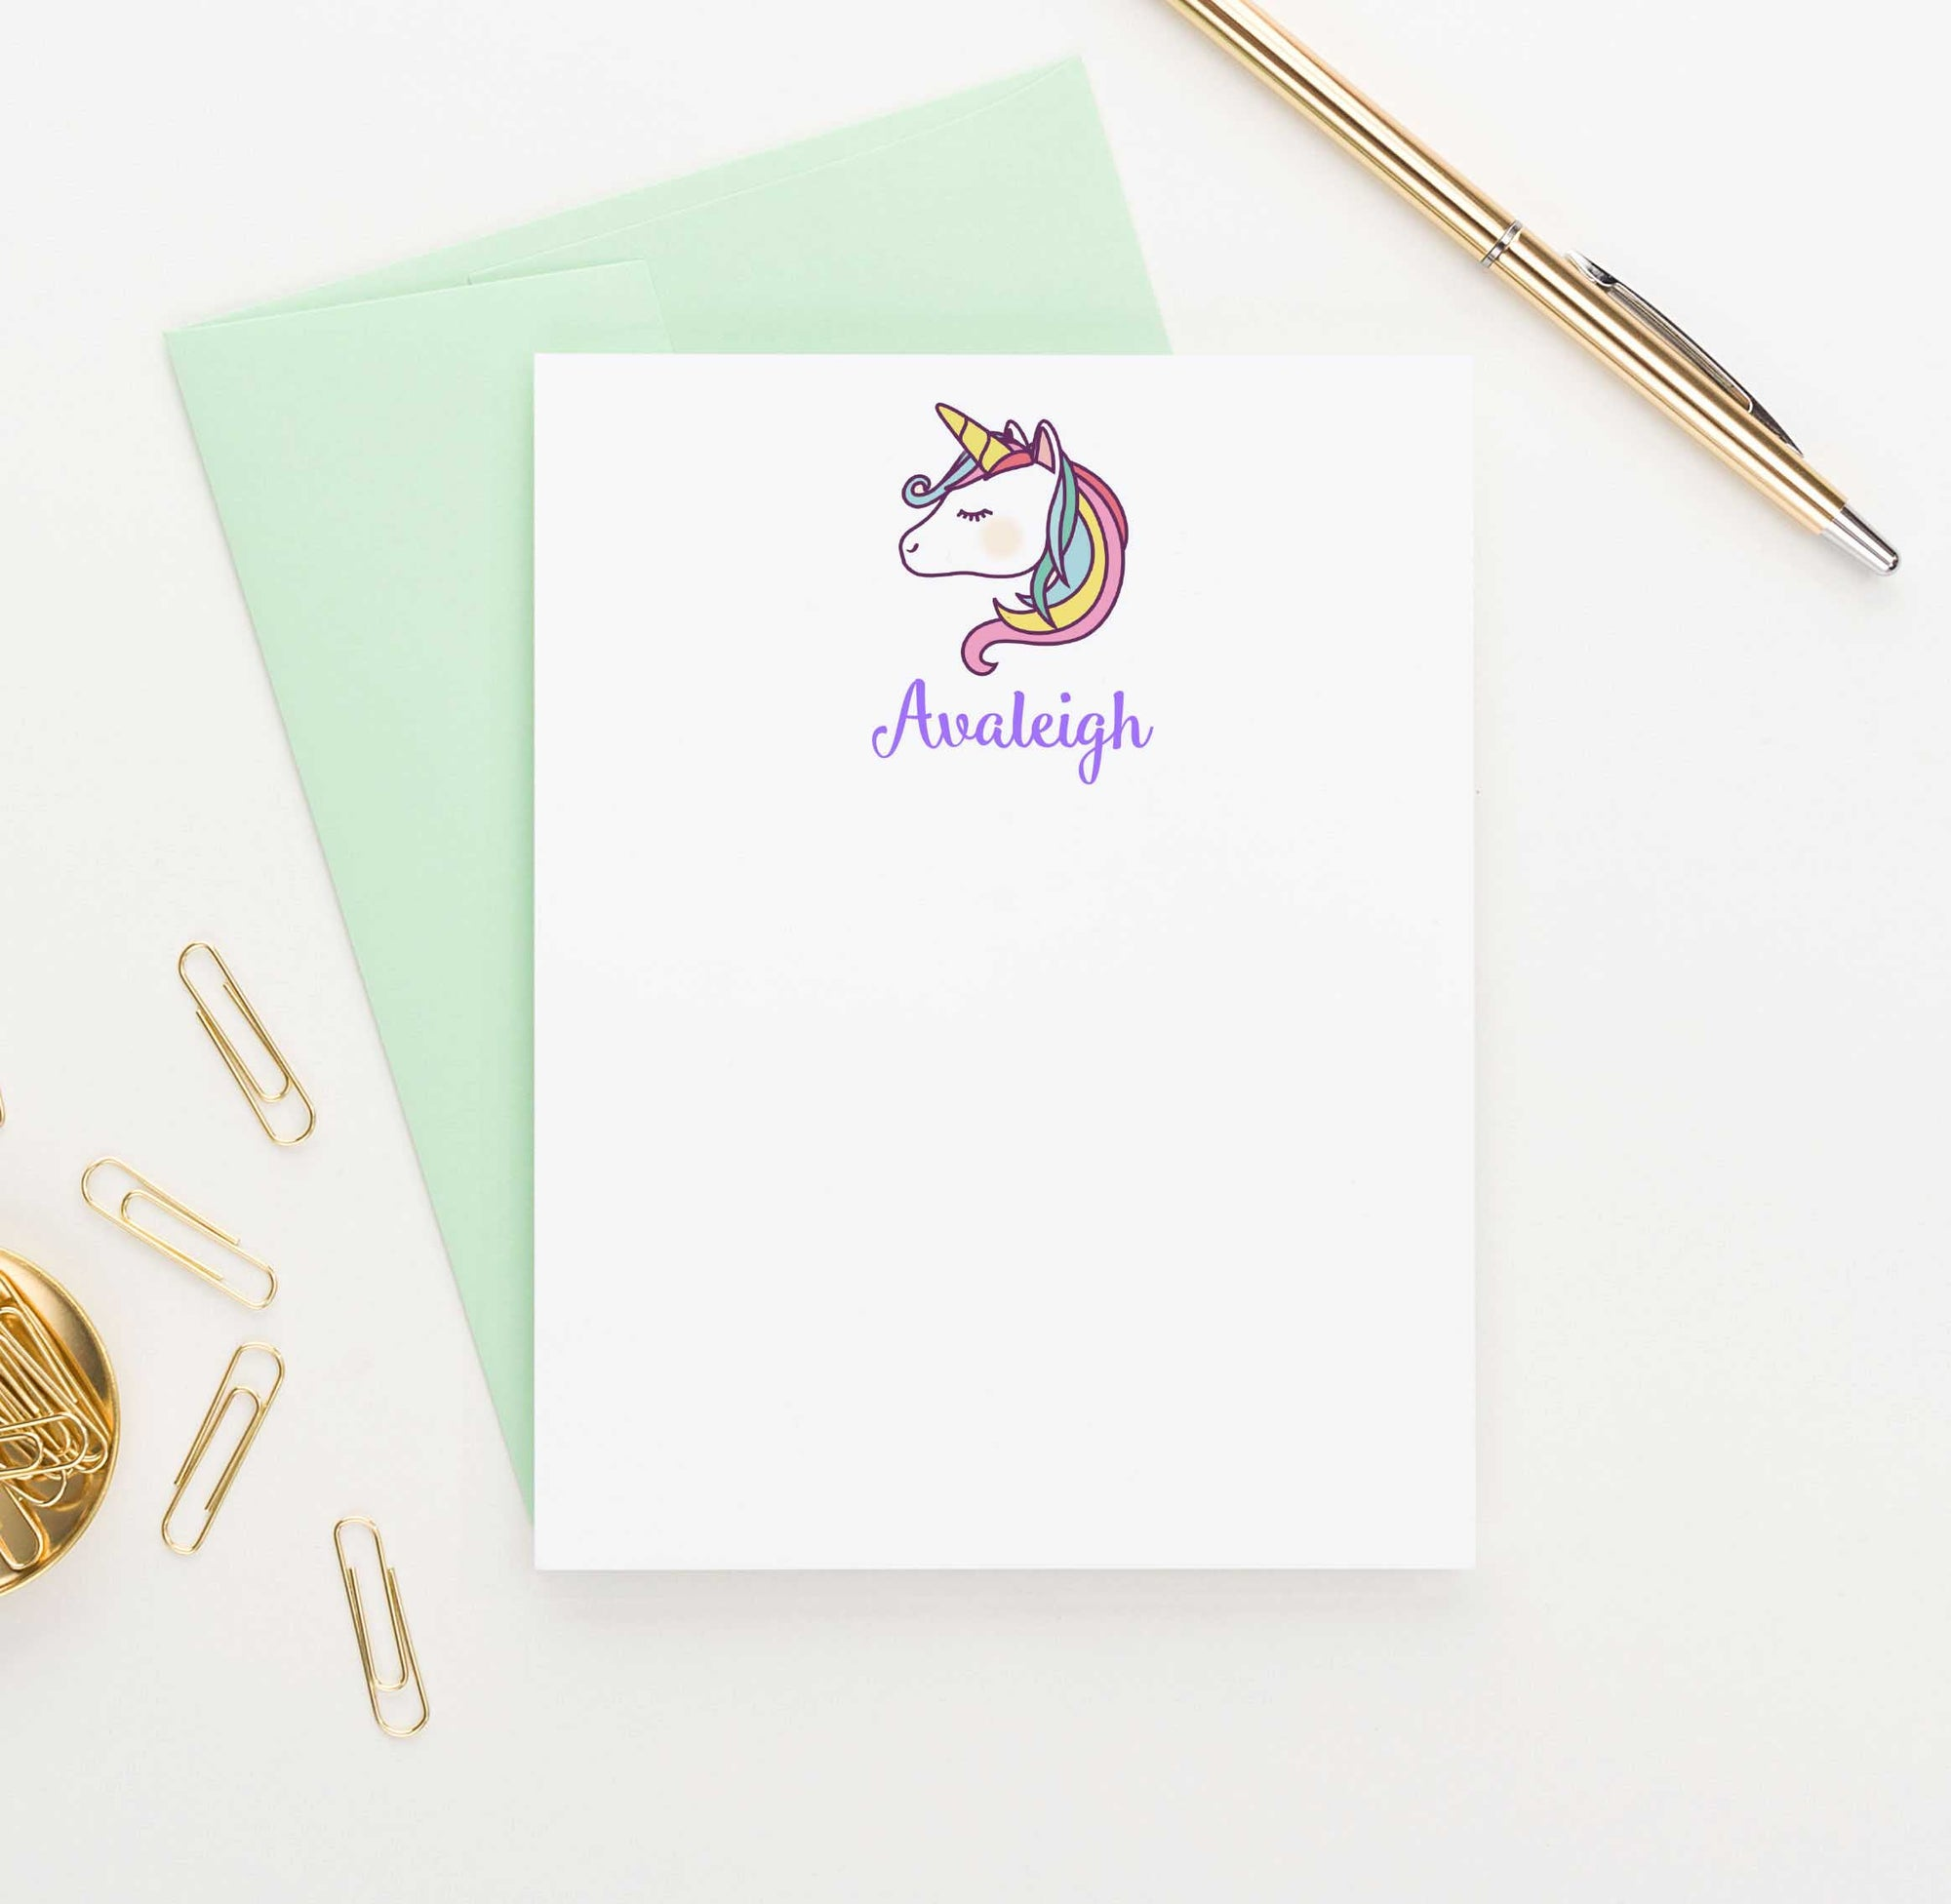 KS064 personalized unicorn kid stationery set girls boys note cards unicorns fairtale animal 1